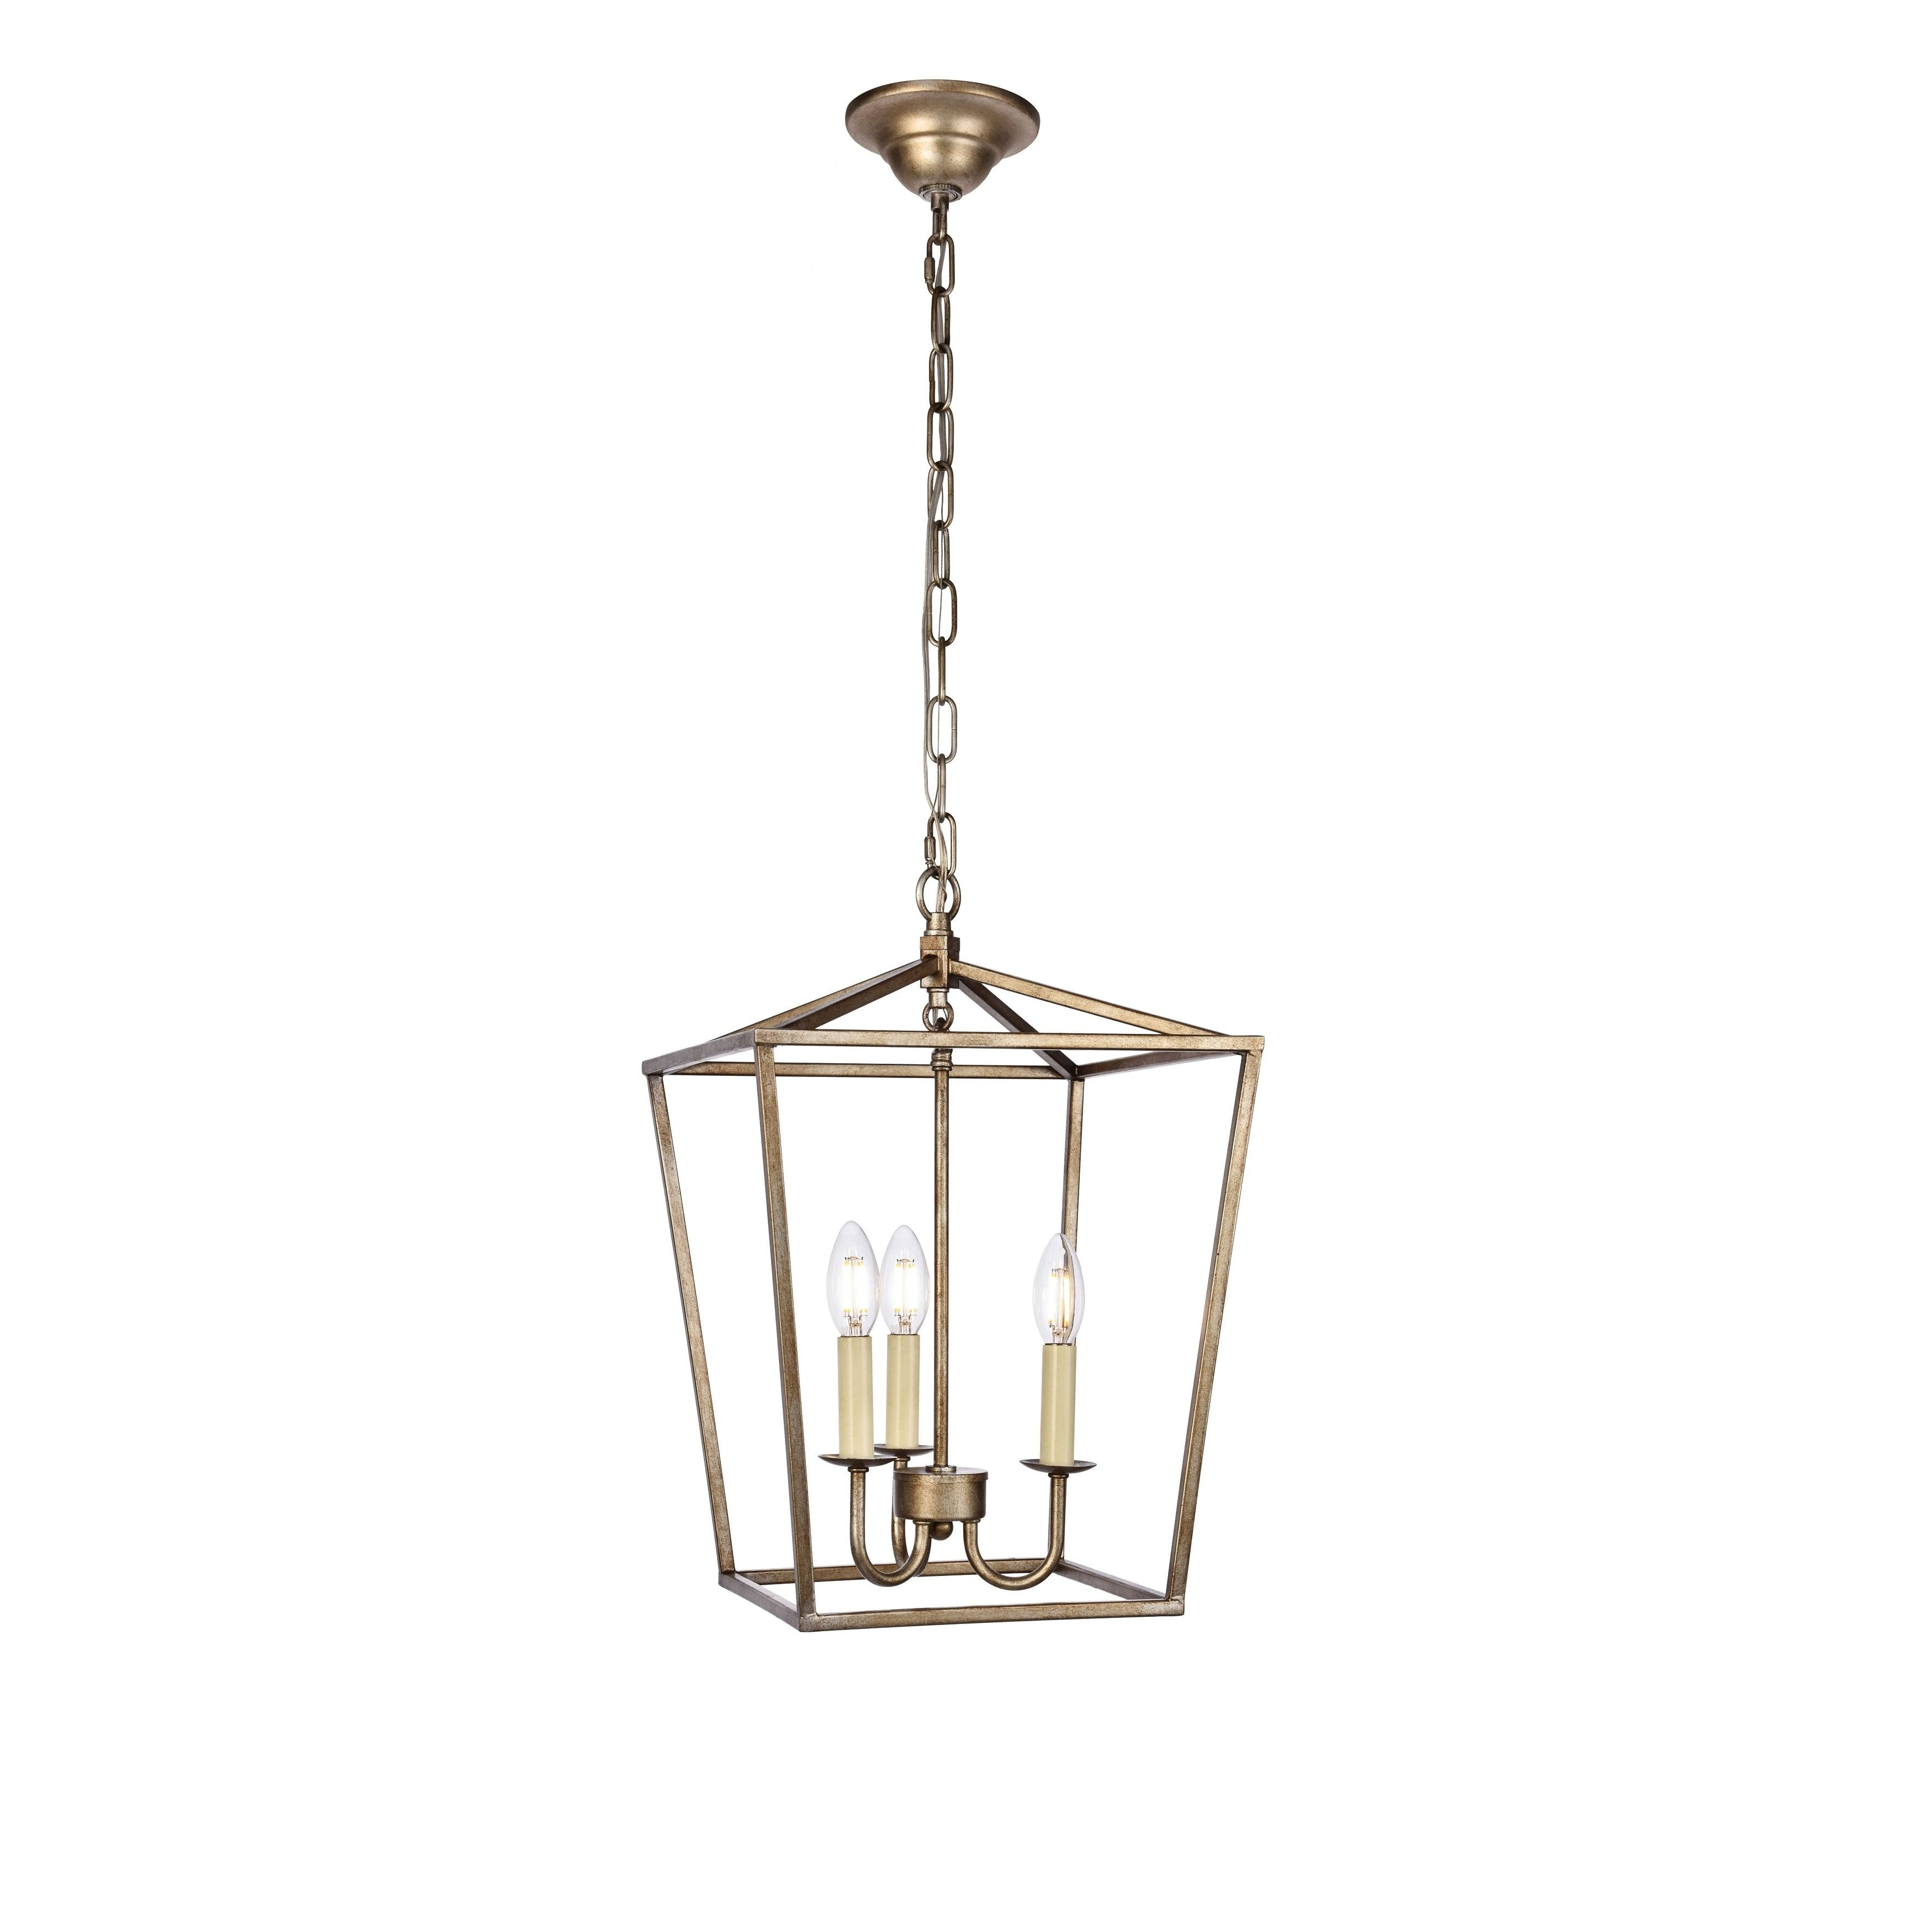 Elegant Maddox Collection Pendant D12.5 H18.25 Lt:3 Vintage Within Well Known Finnick 3 Light Lantern Pendants (Gallery 14 of 25)